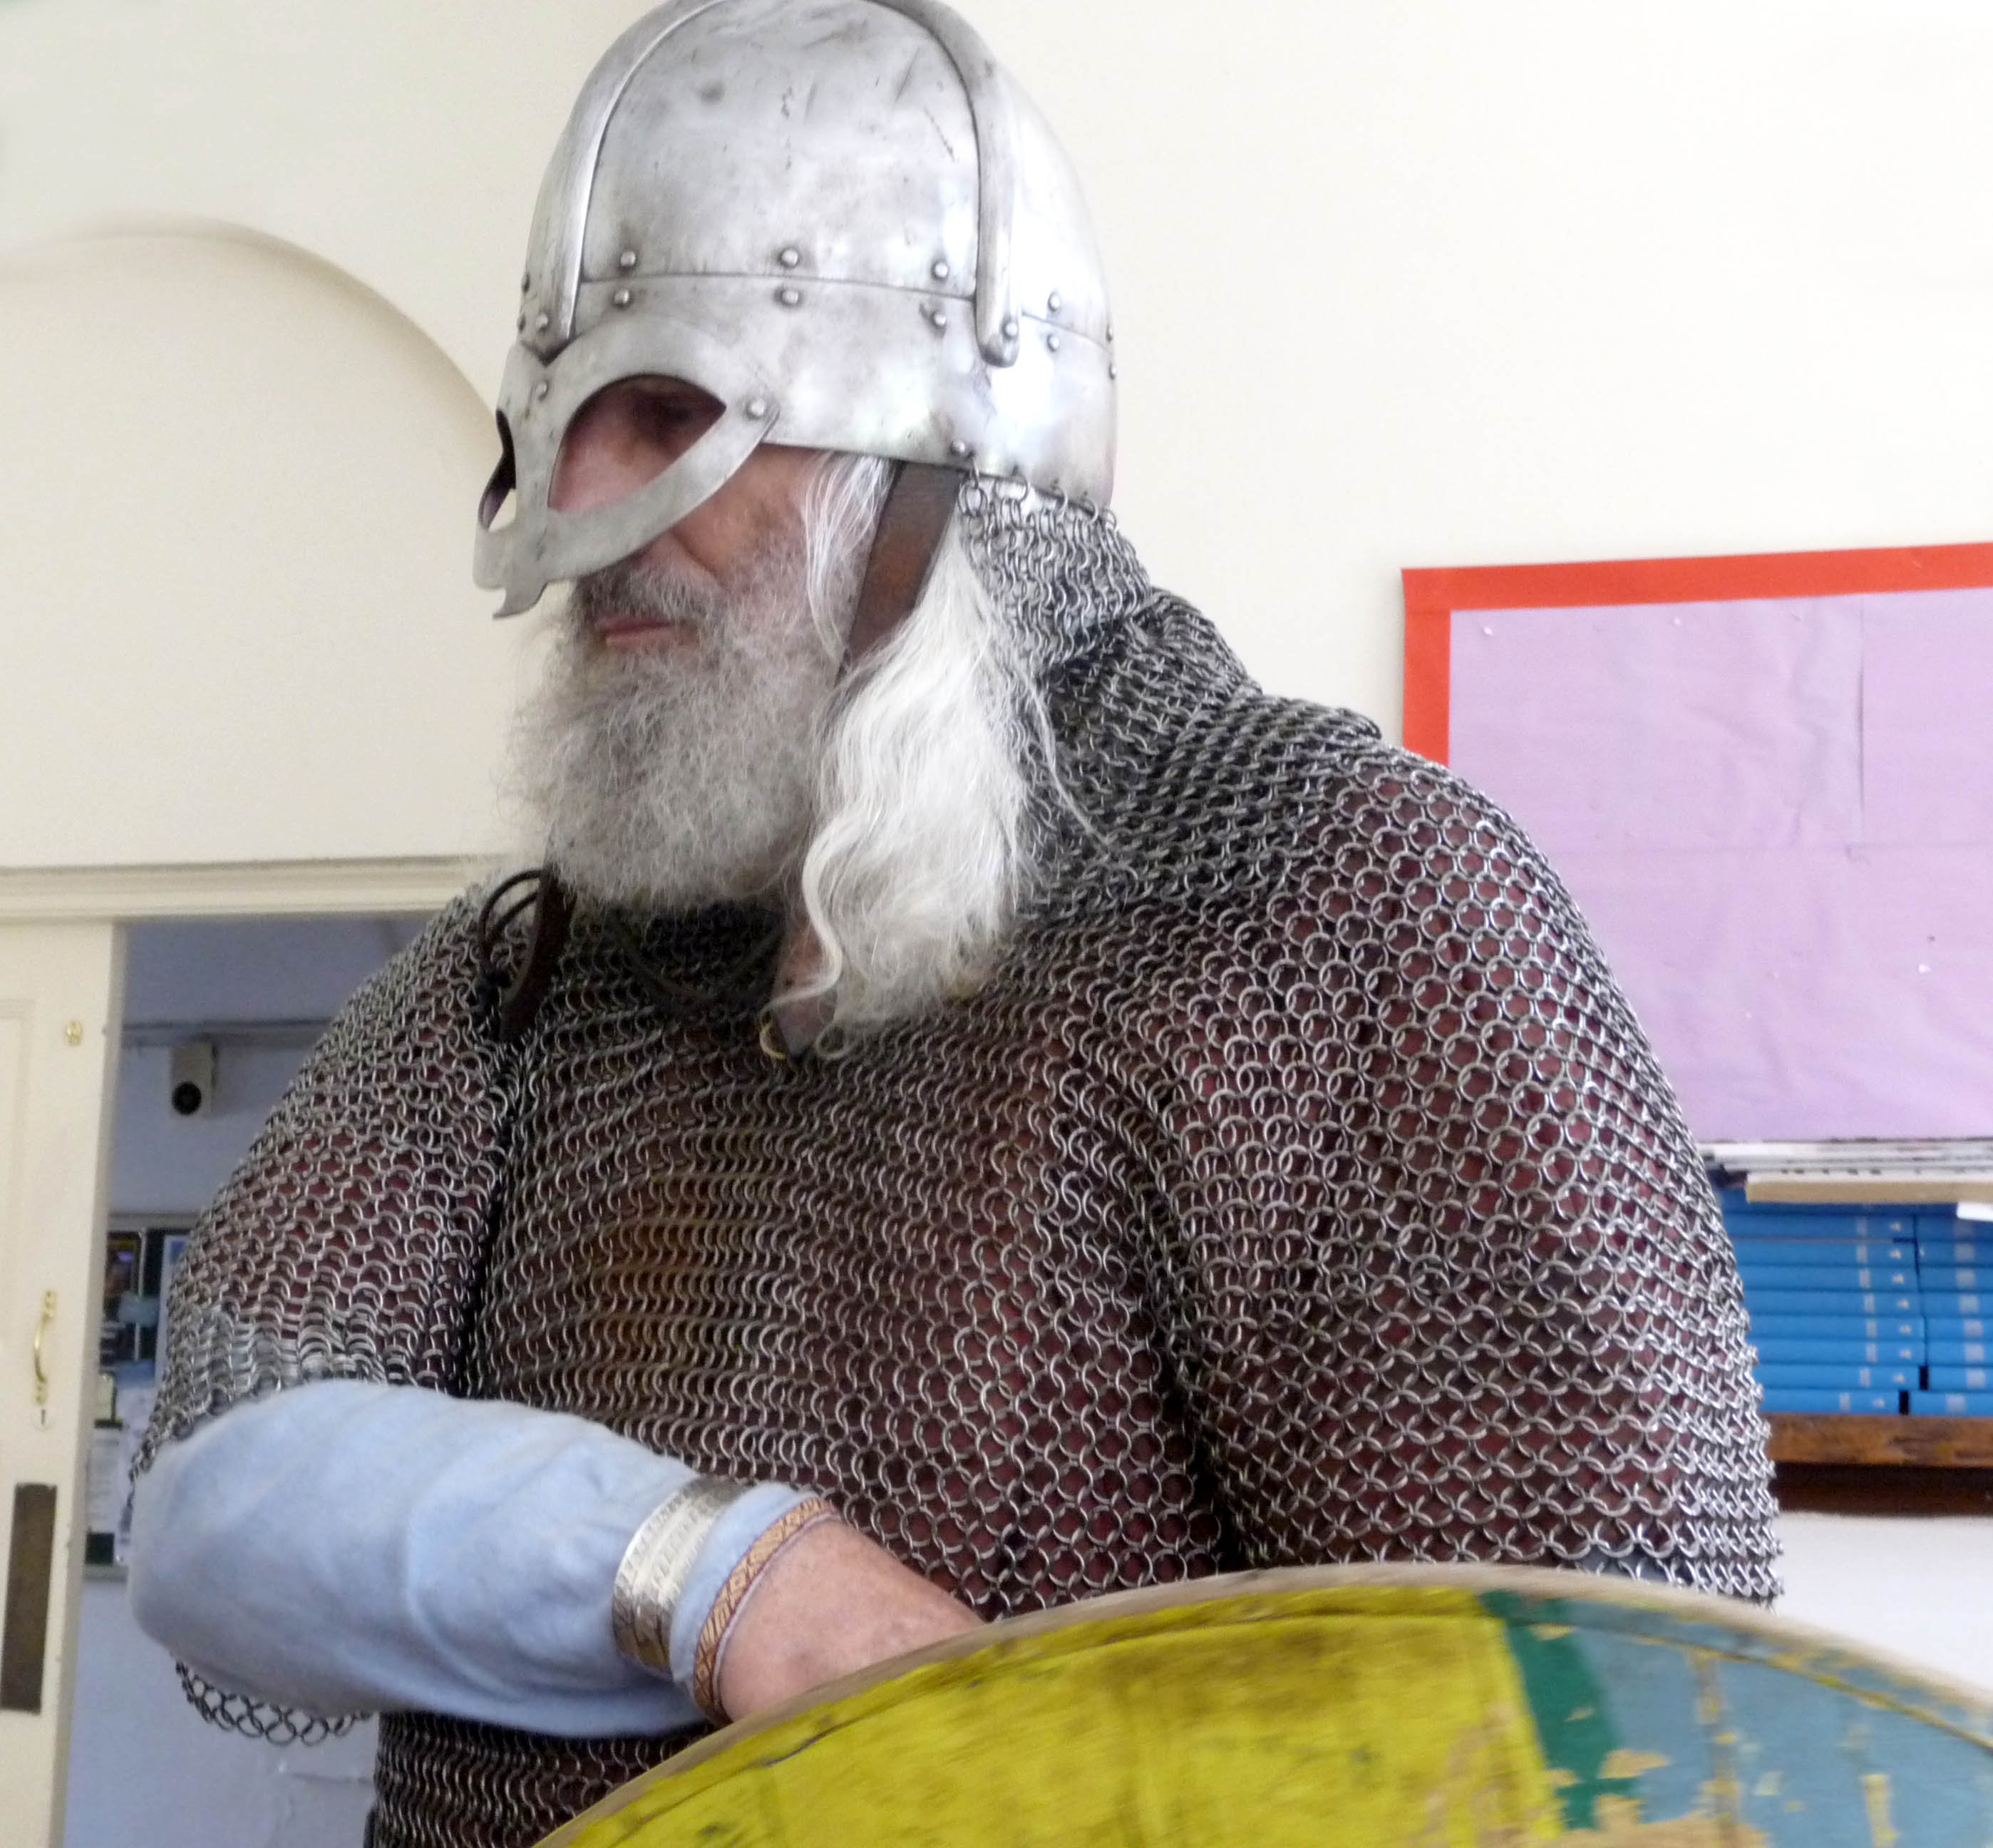 Snorri the Viking is wearing a spectacle helmet made of iron